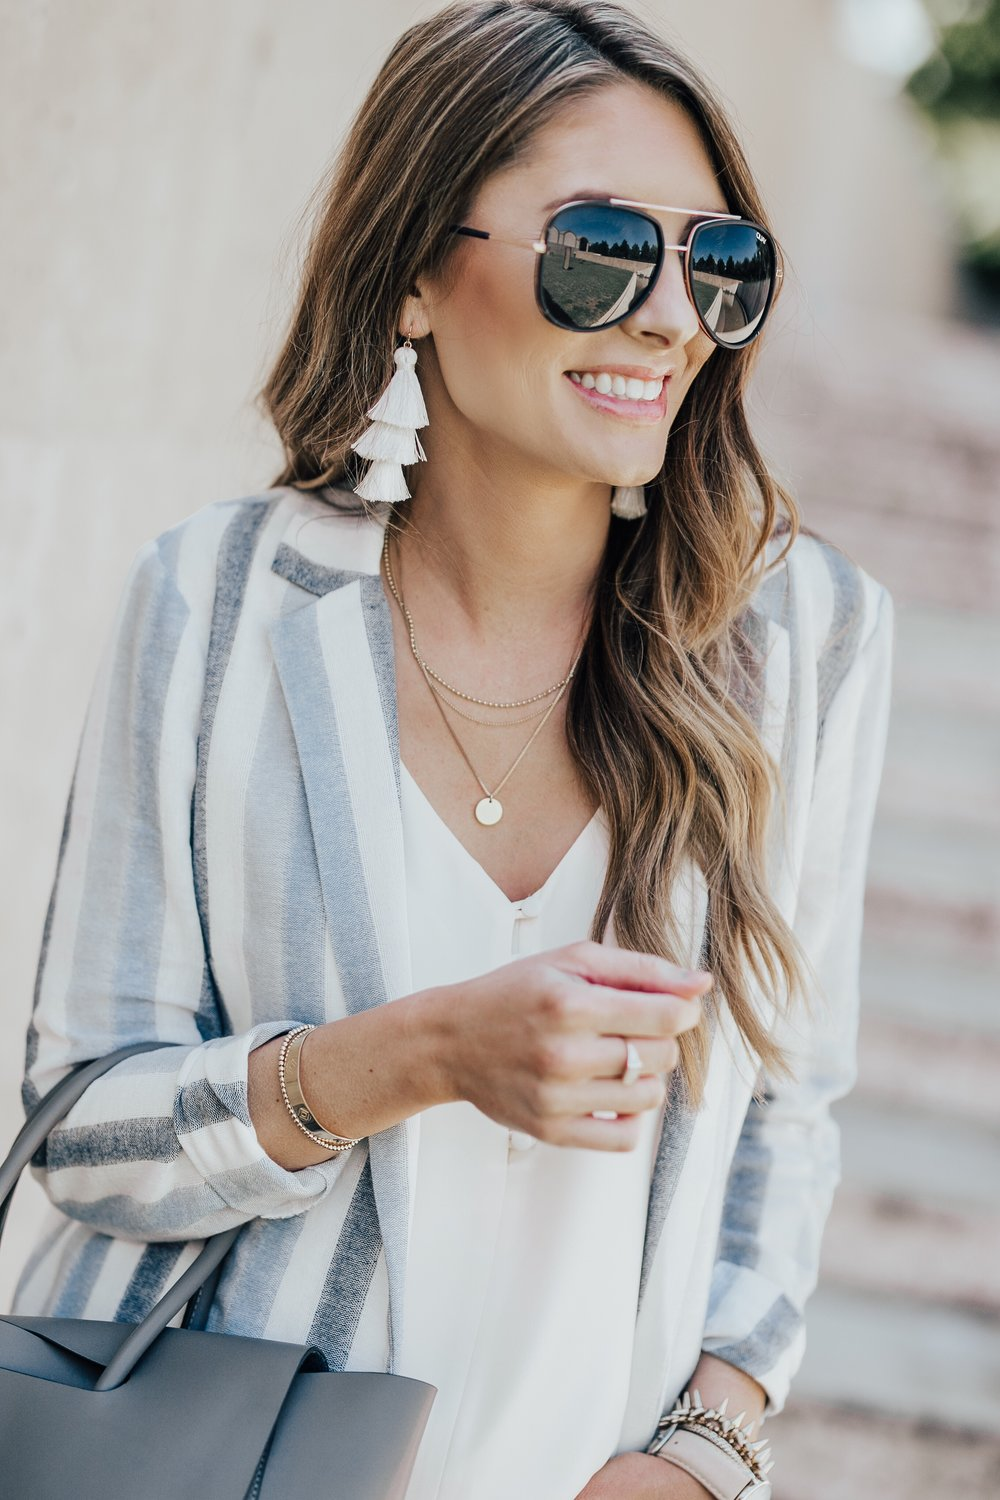 Striped Blazer + Accessories